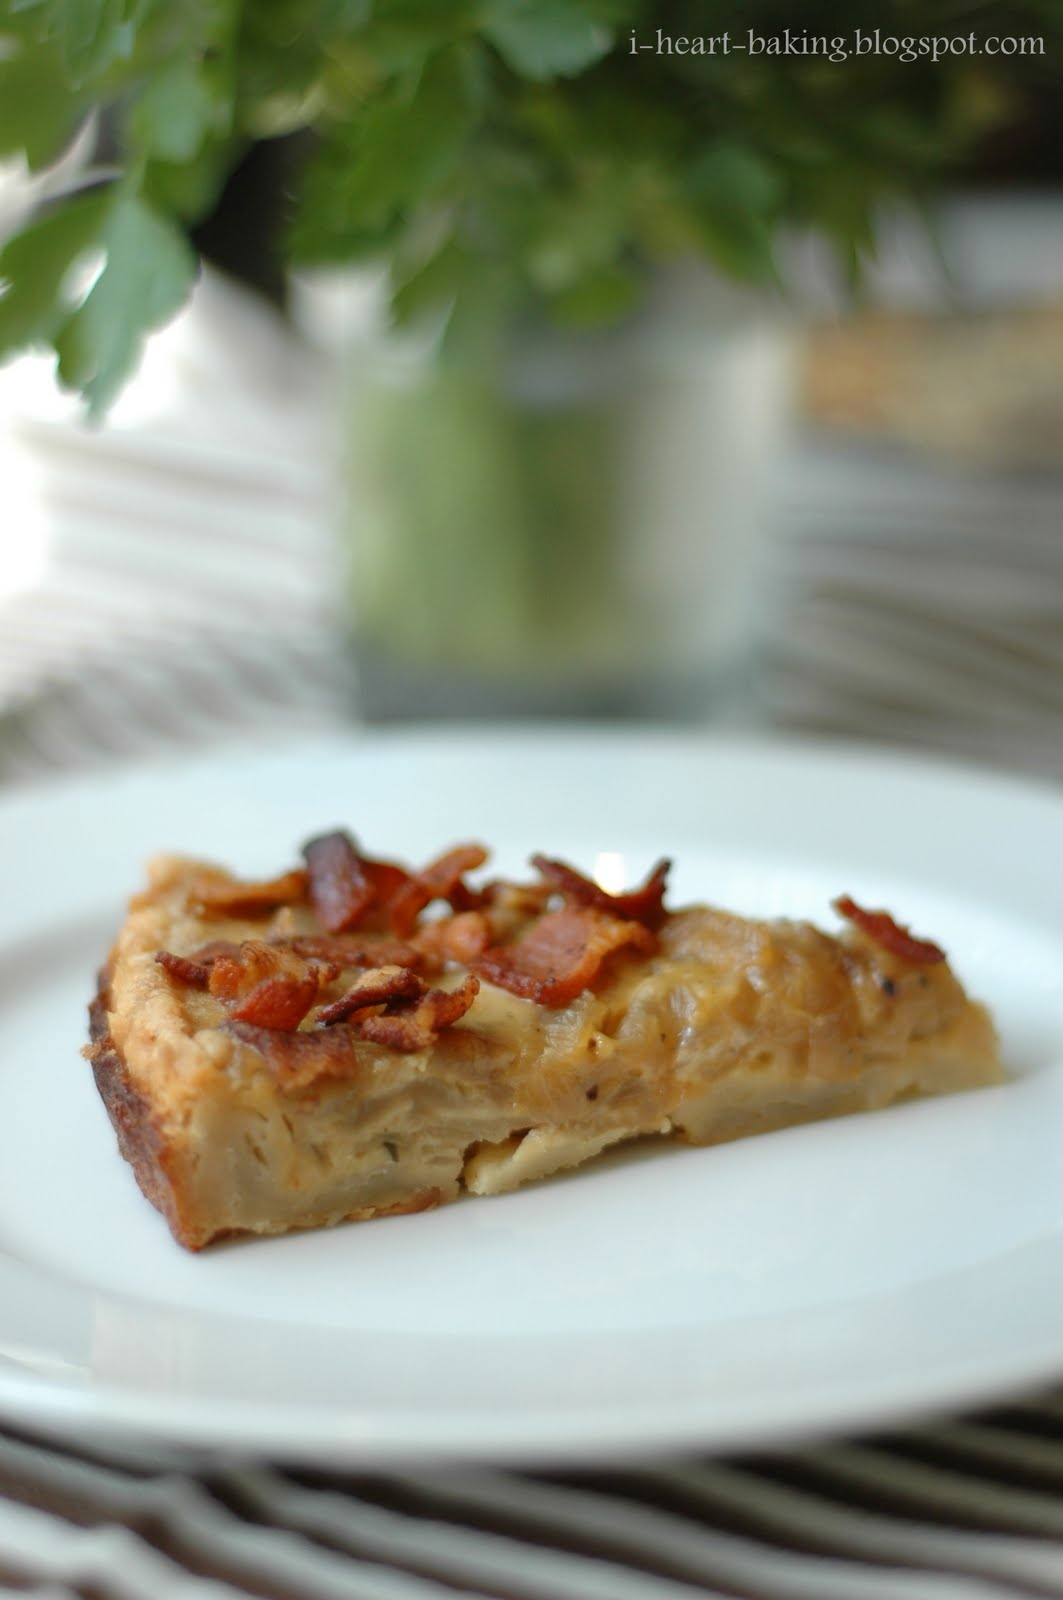 heart baking!: french onion and bacon tart